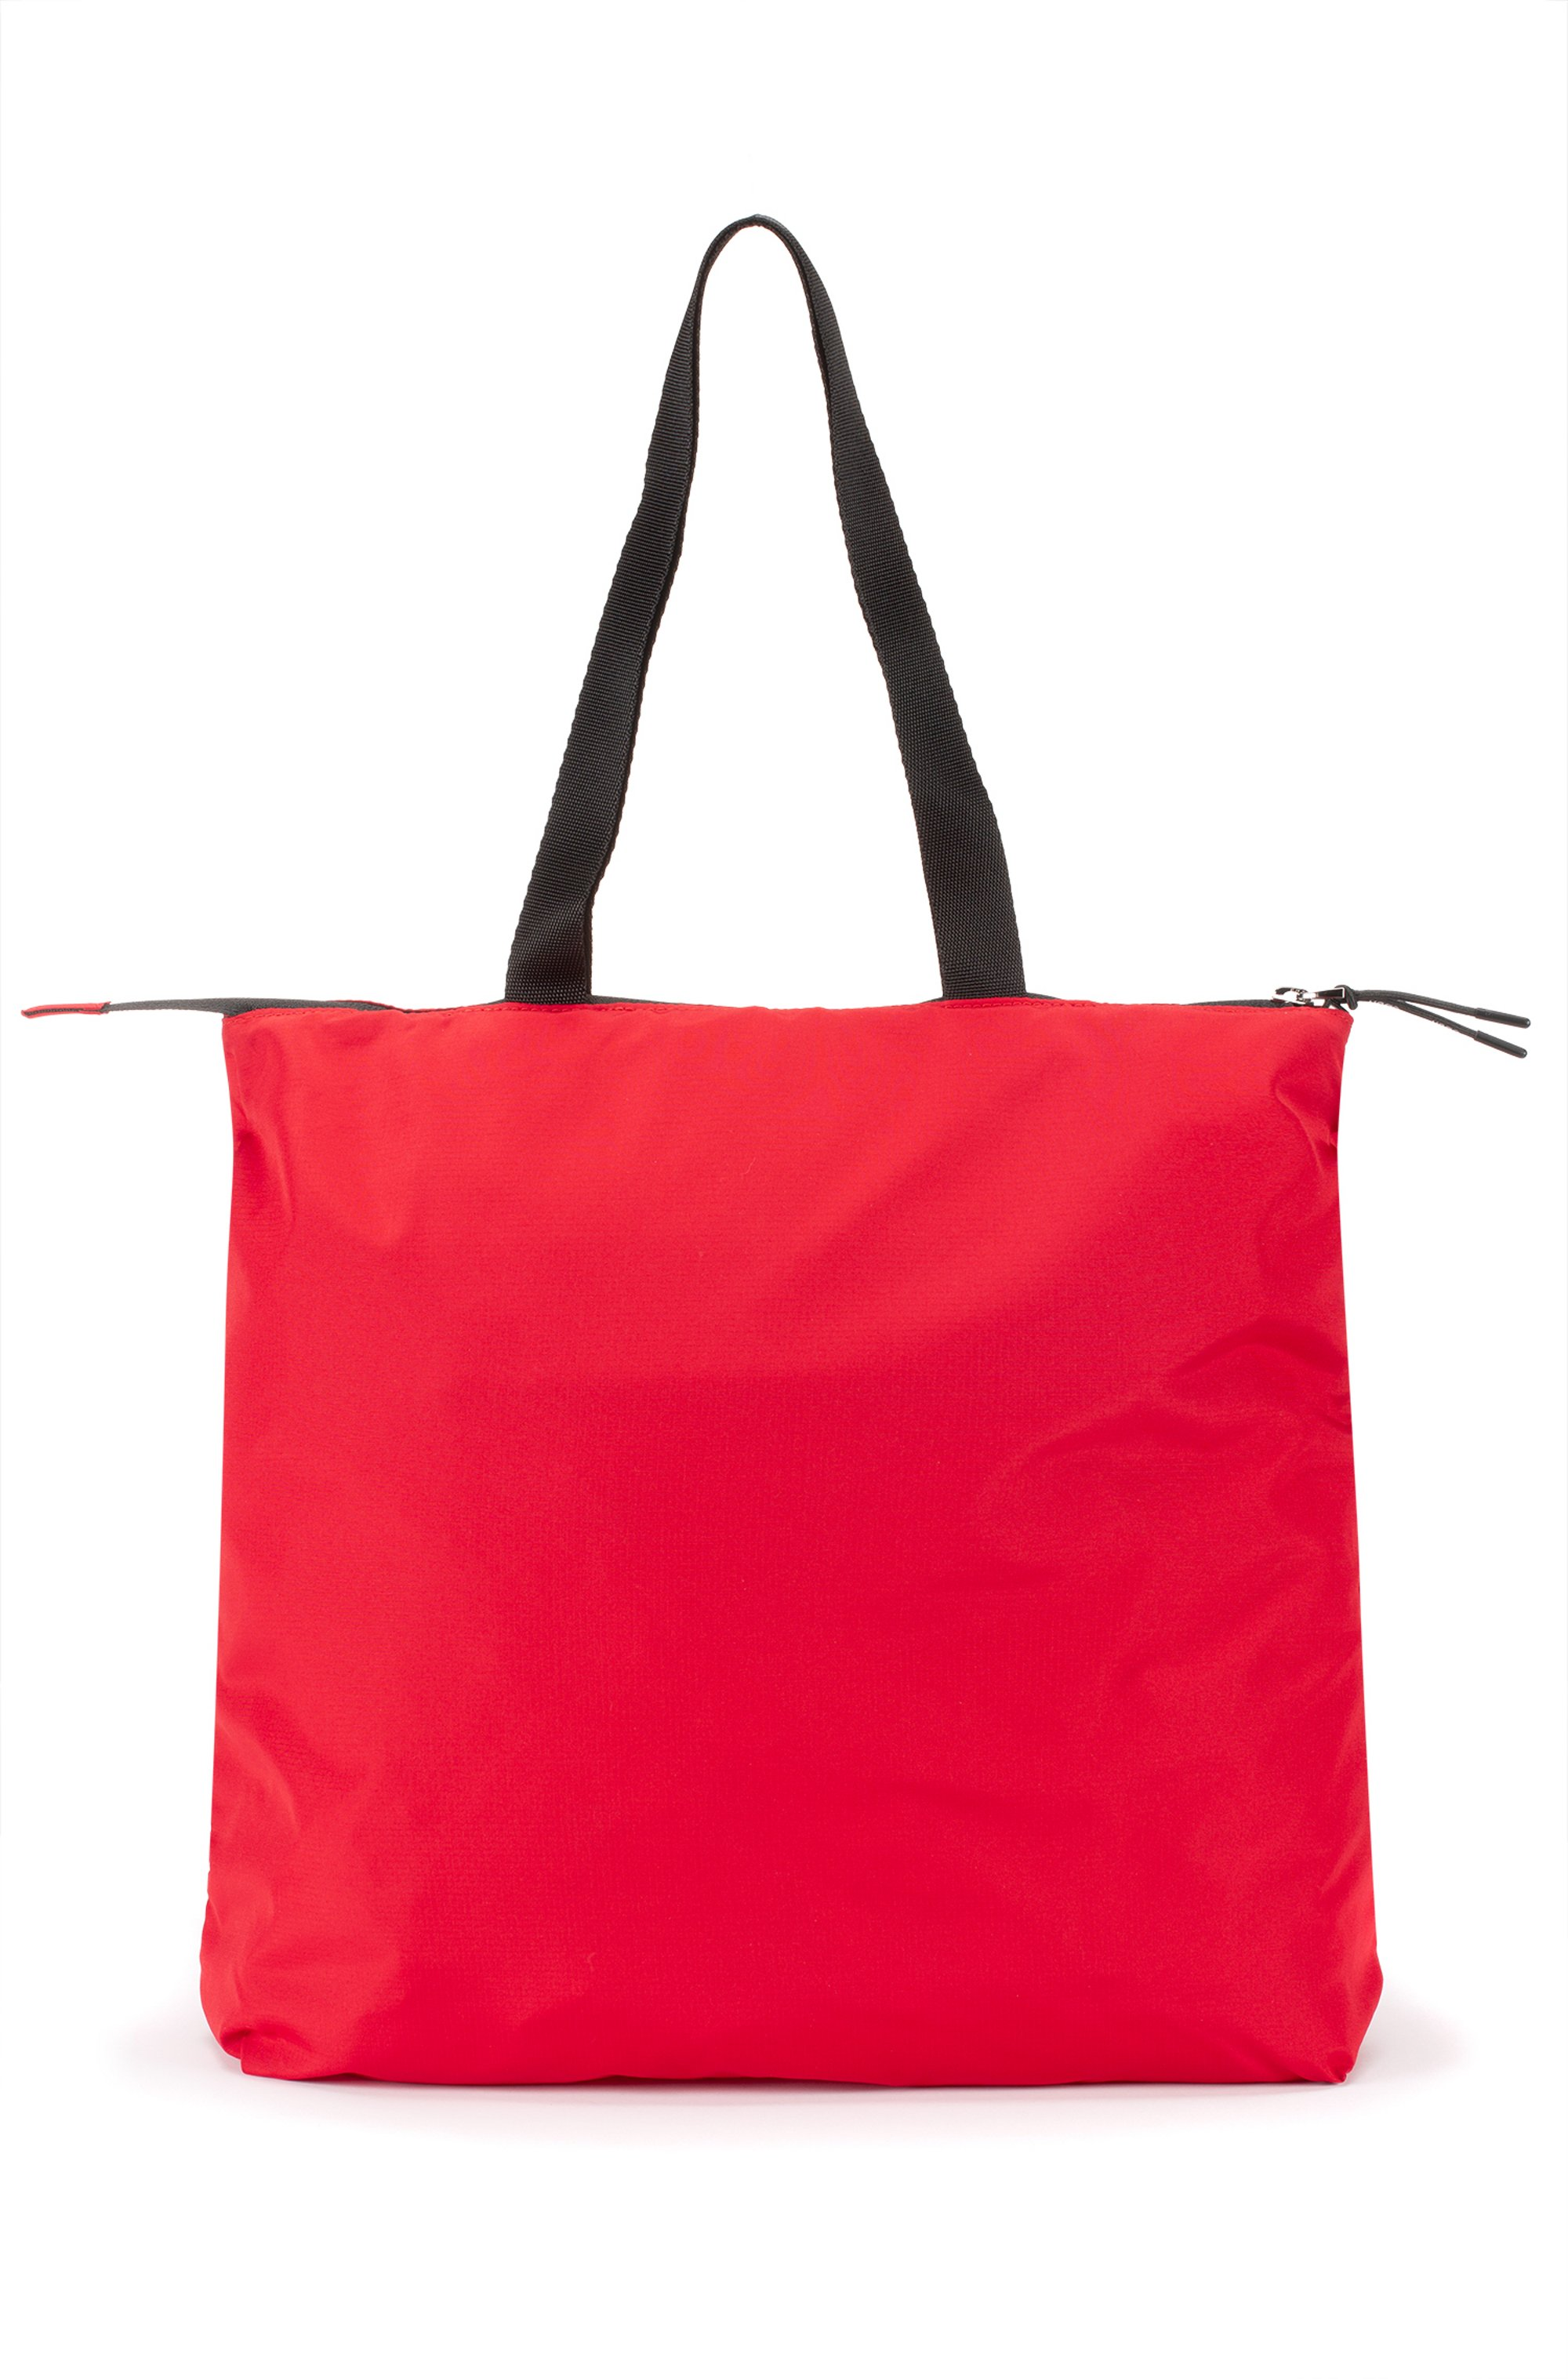 Packable recycled-nylon shopper bag with logo